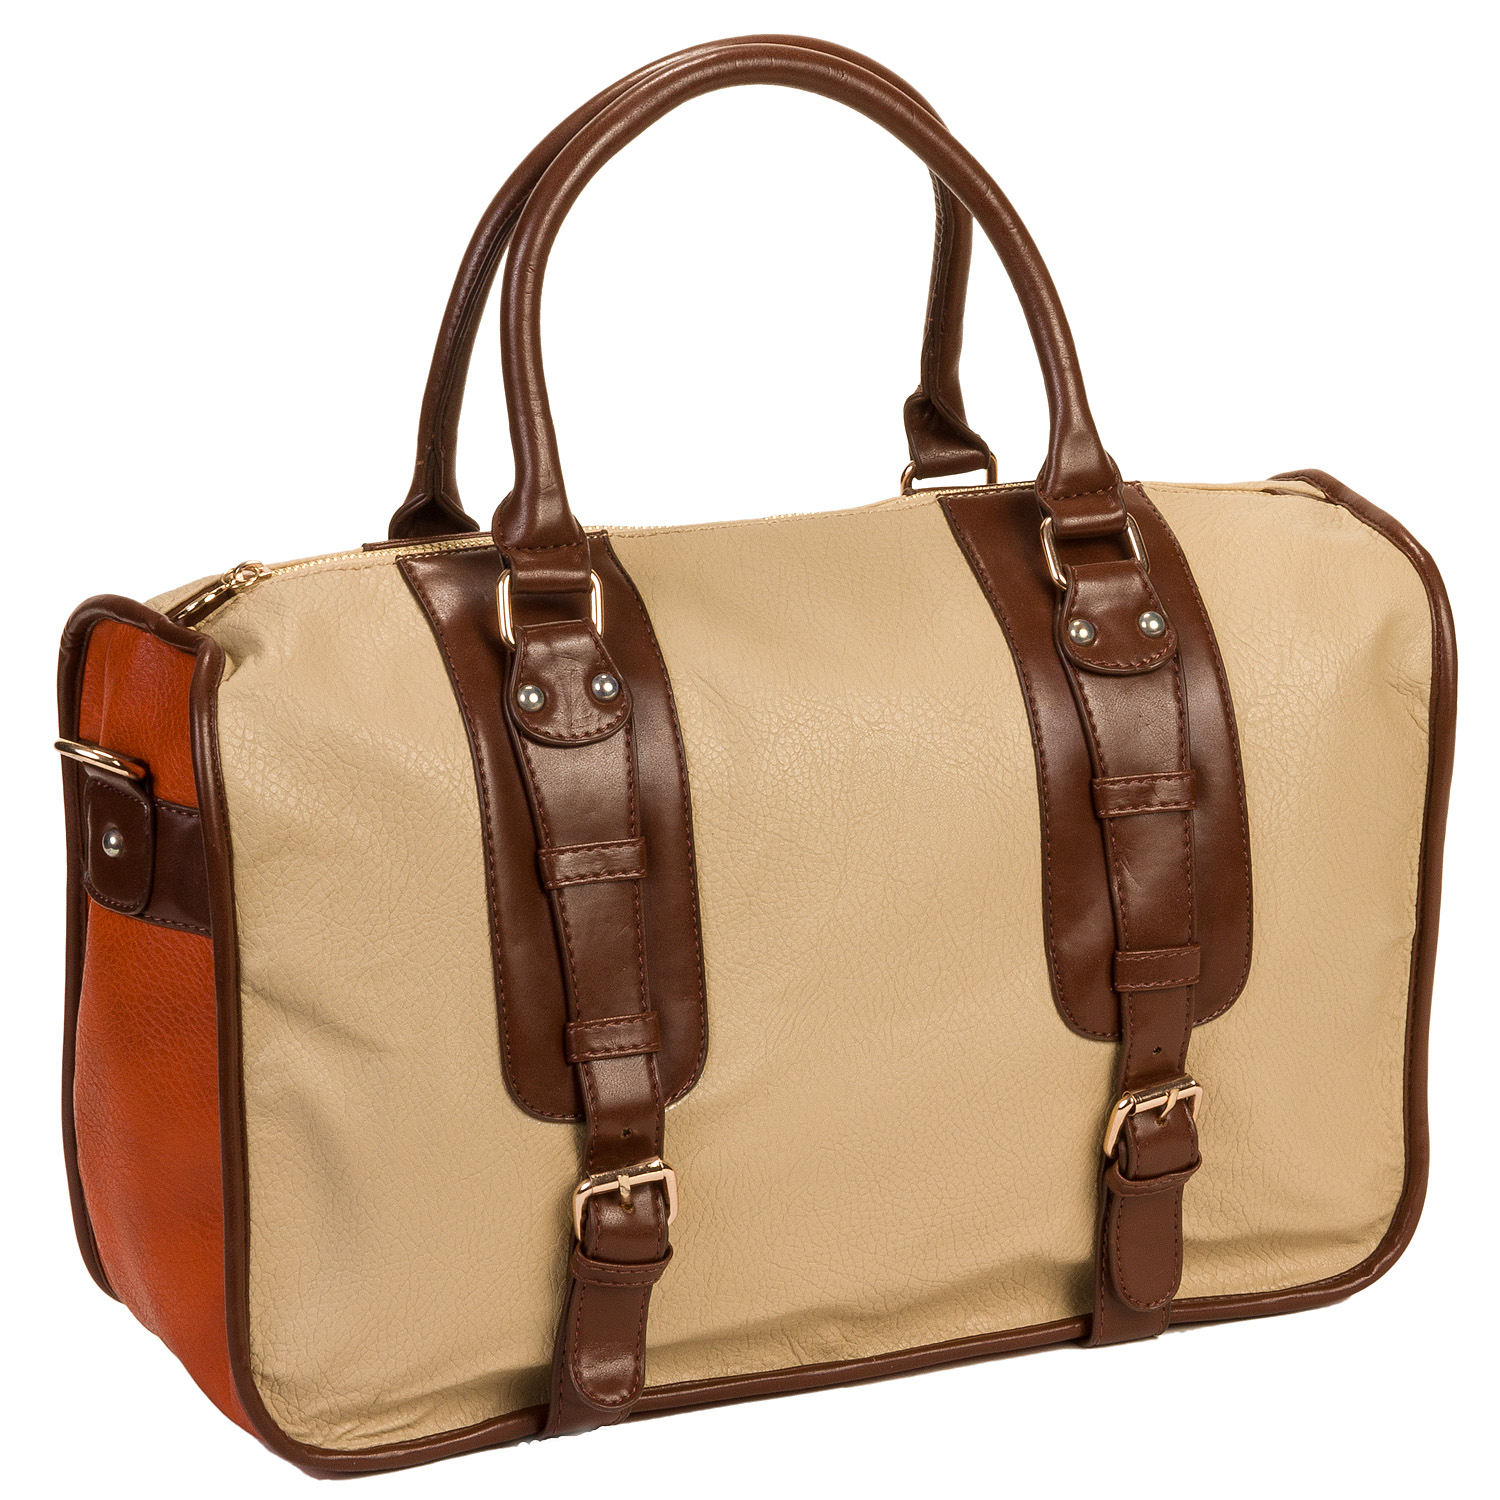 Excellent Duffle Bags Are Usually Kept Lighter And Are Spacious To Carry Good Number Of Things At A Go Their Unique Capacity To Adjust And Hold On To The Luggage Makes It A Popular Travel Bag That Is Carried By Both Men And Women Moreover, On